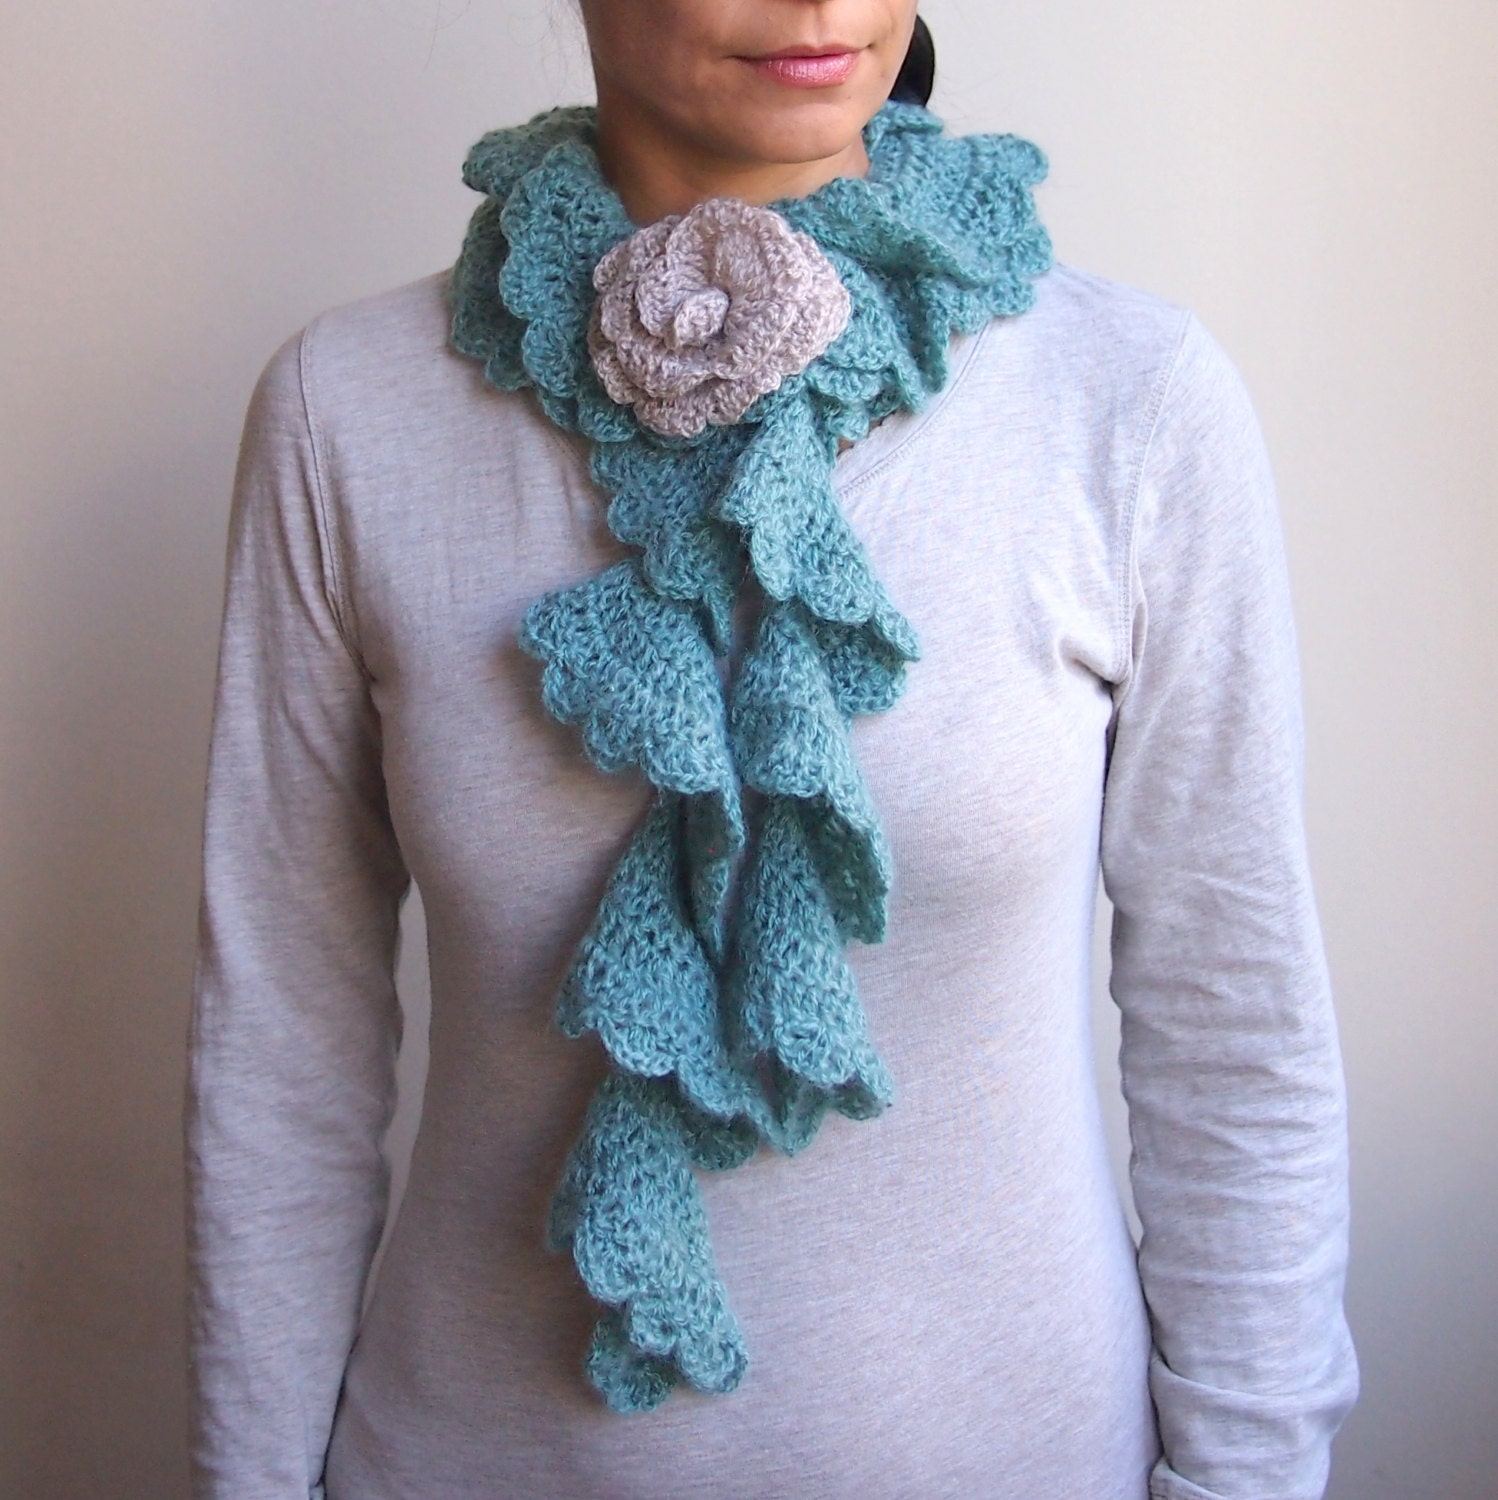 Fancy Crochet Pattern For Ruffled Scarf Image - Easy Scarf Knitting ...